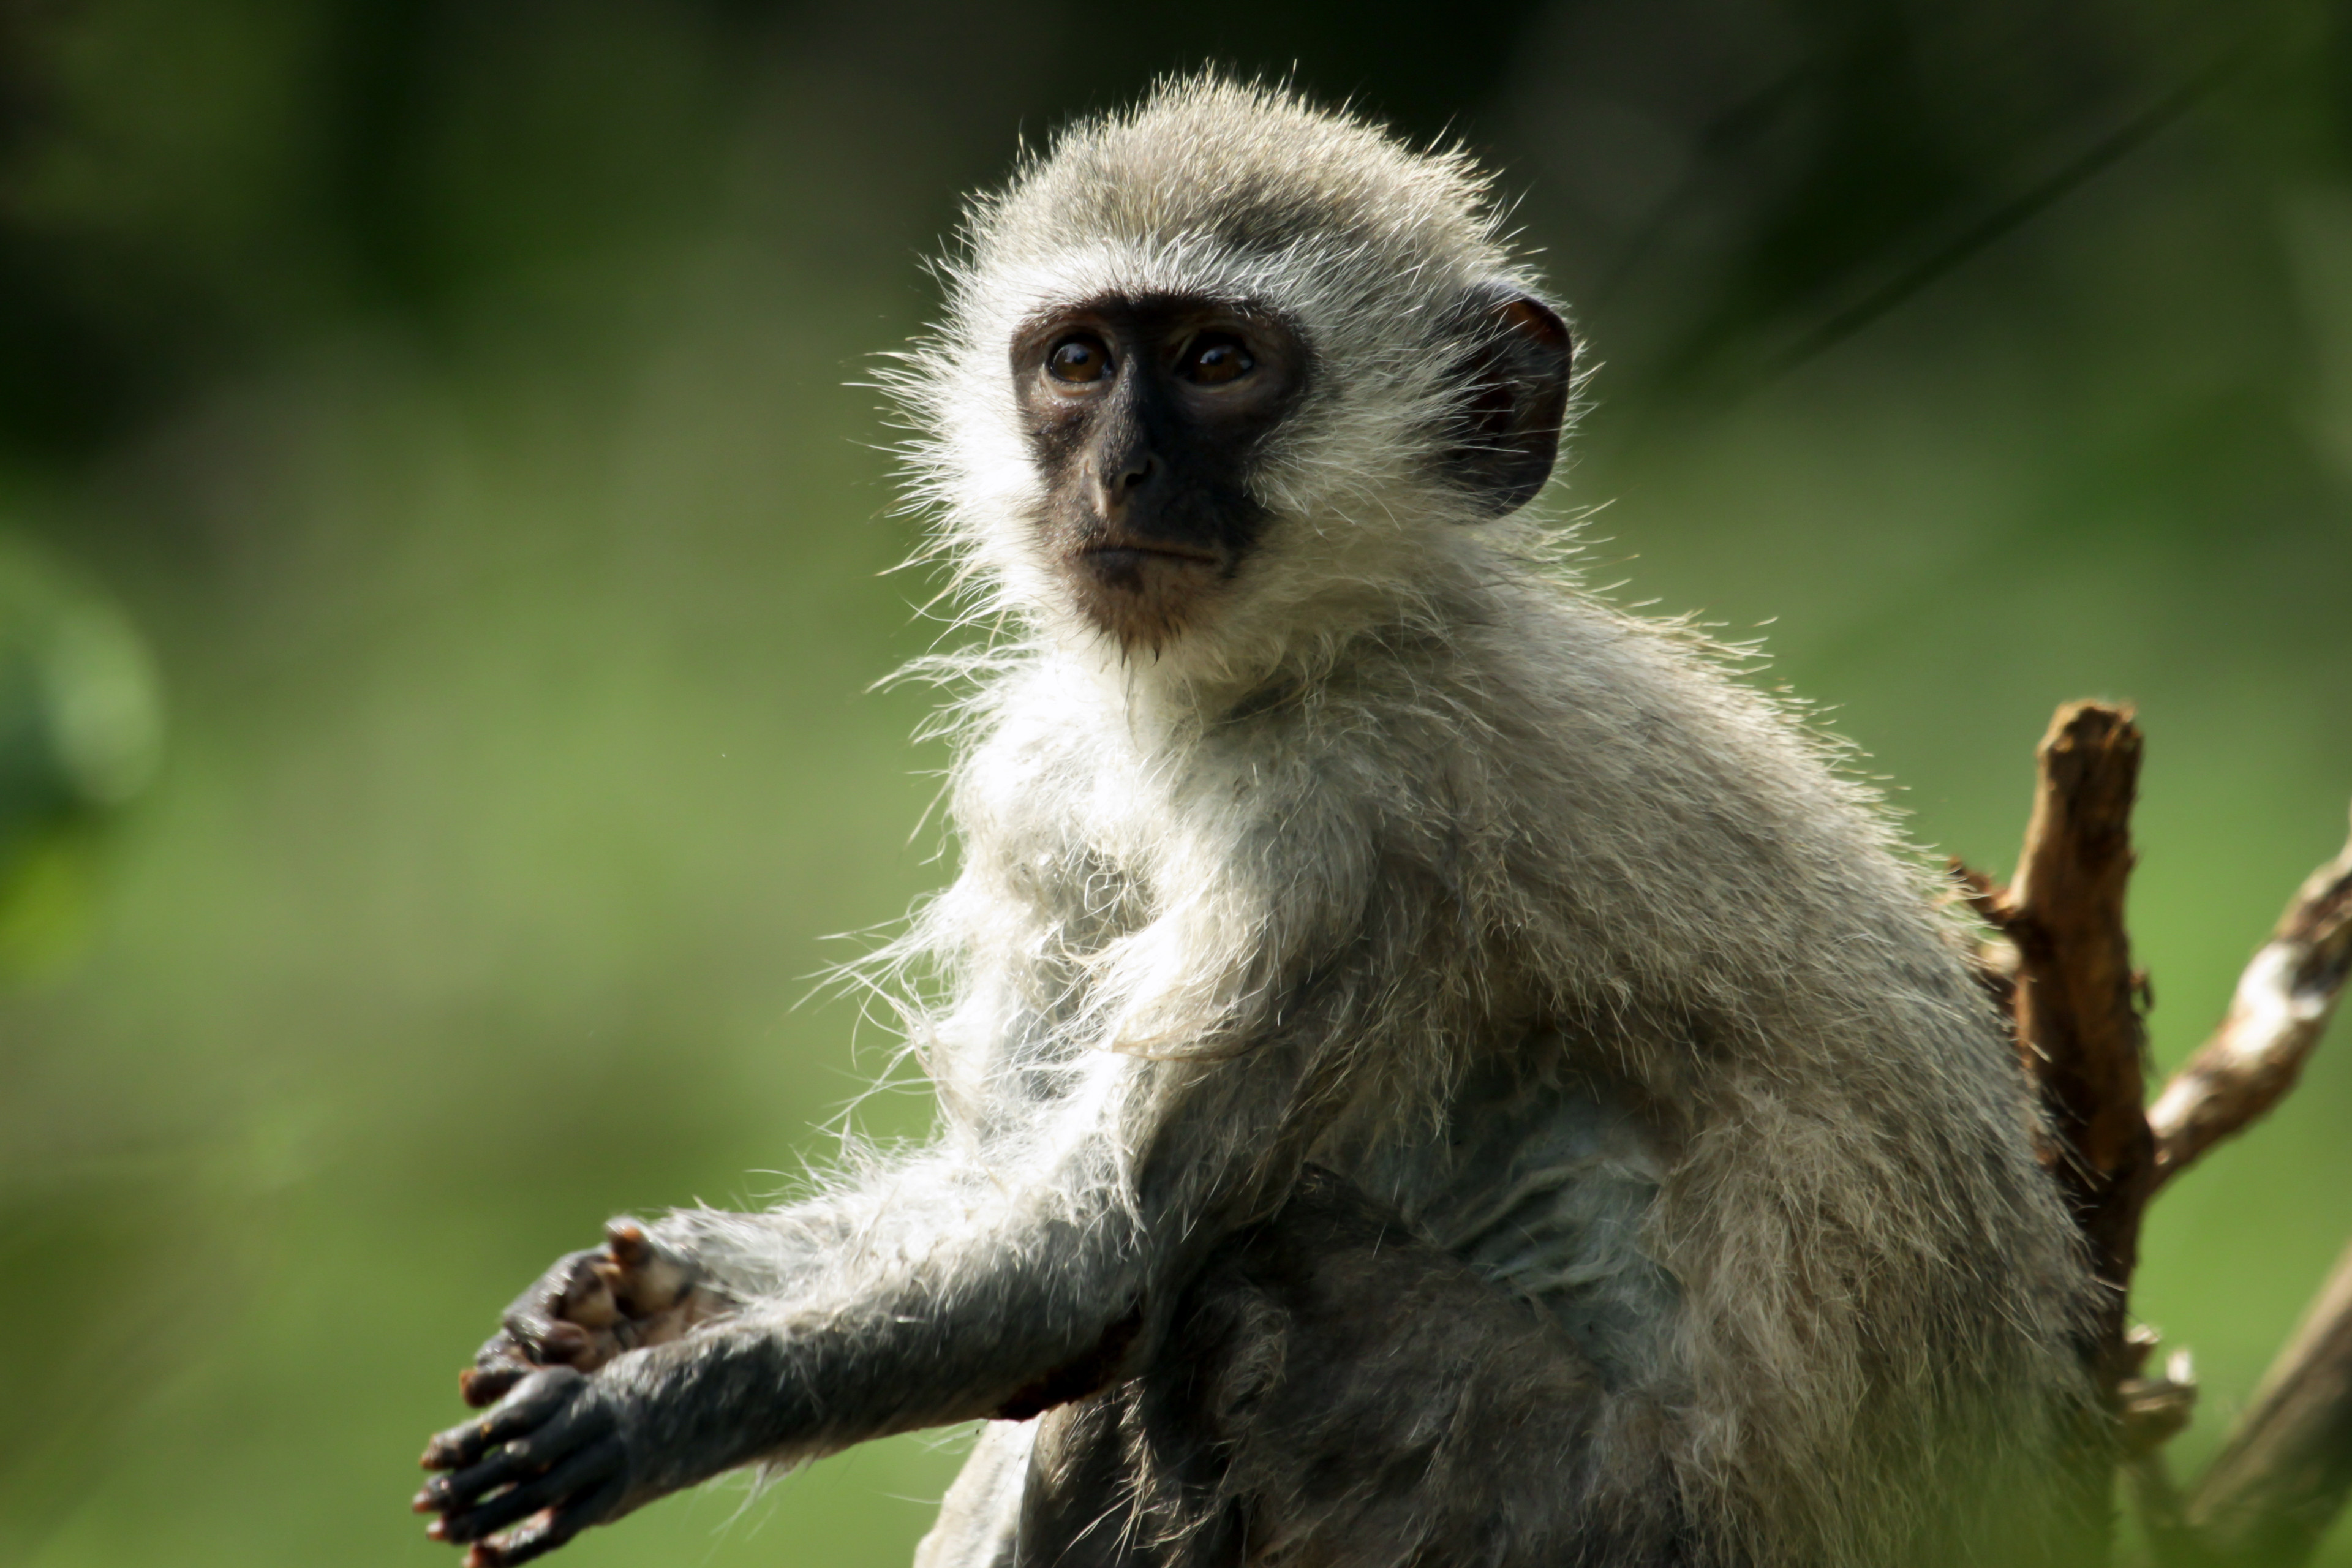 Vervet Monkey (Chlorocebus pygerythrus) - taking a bath.